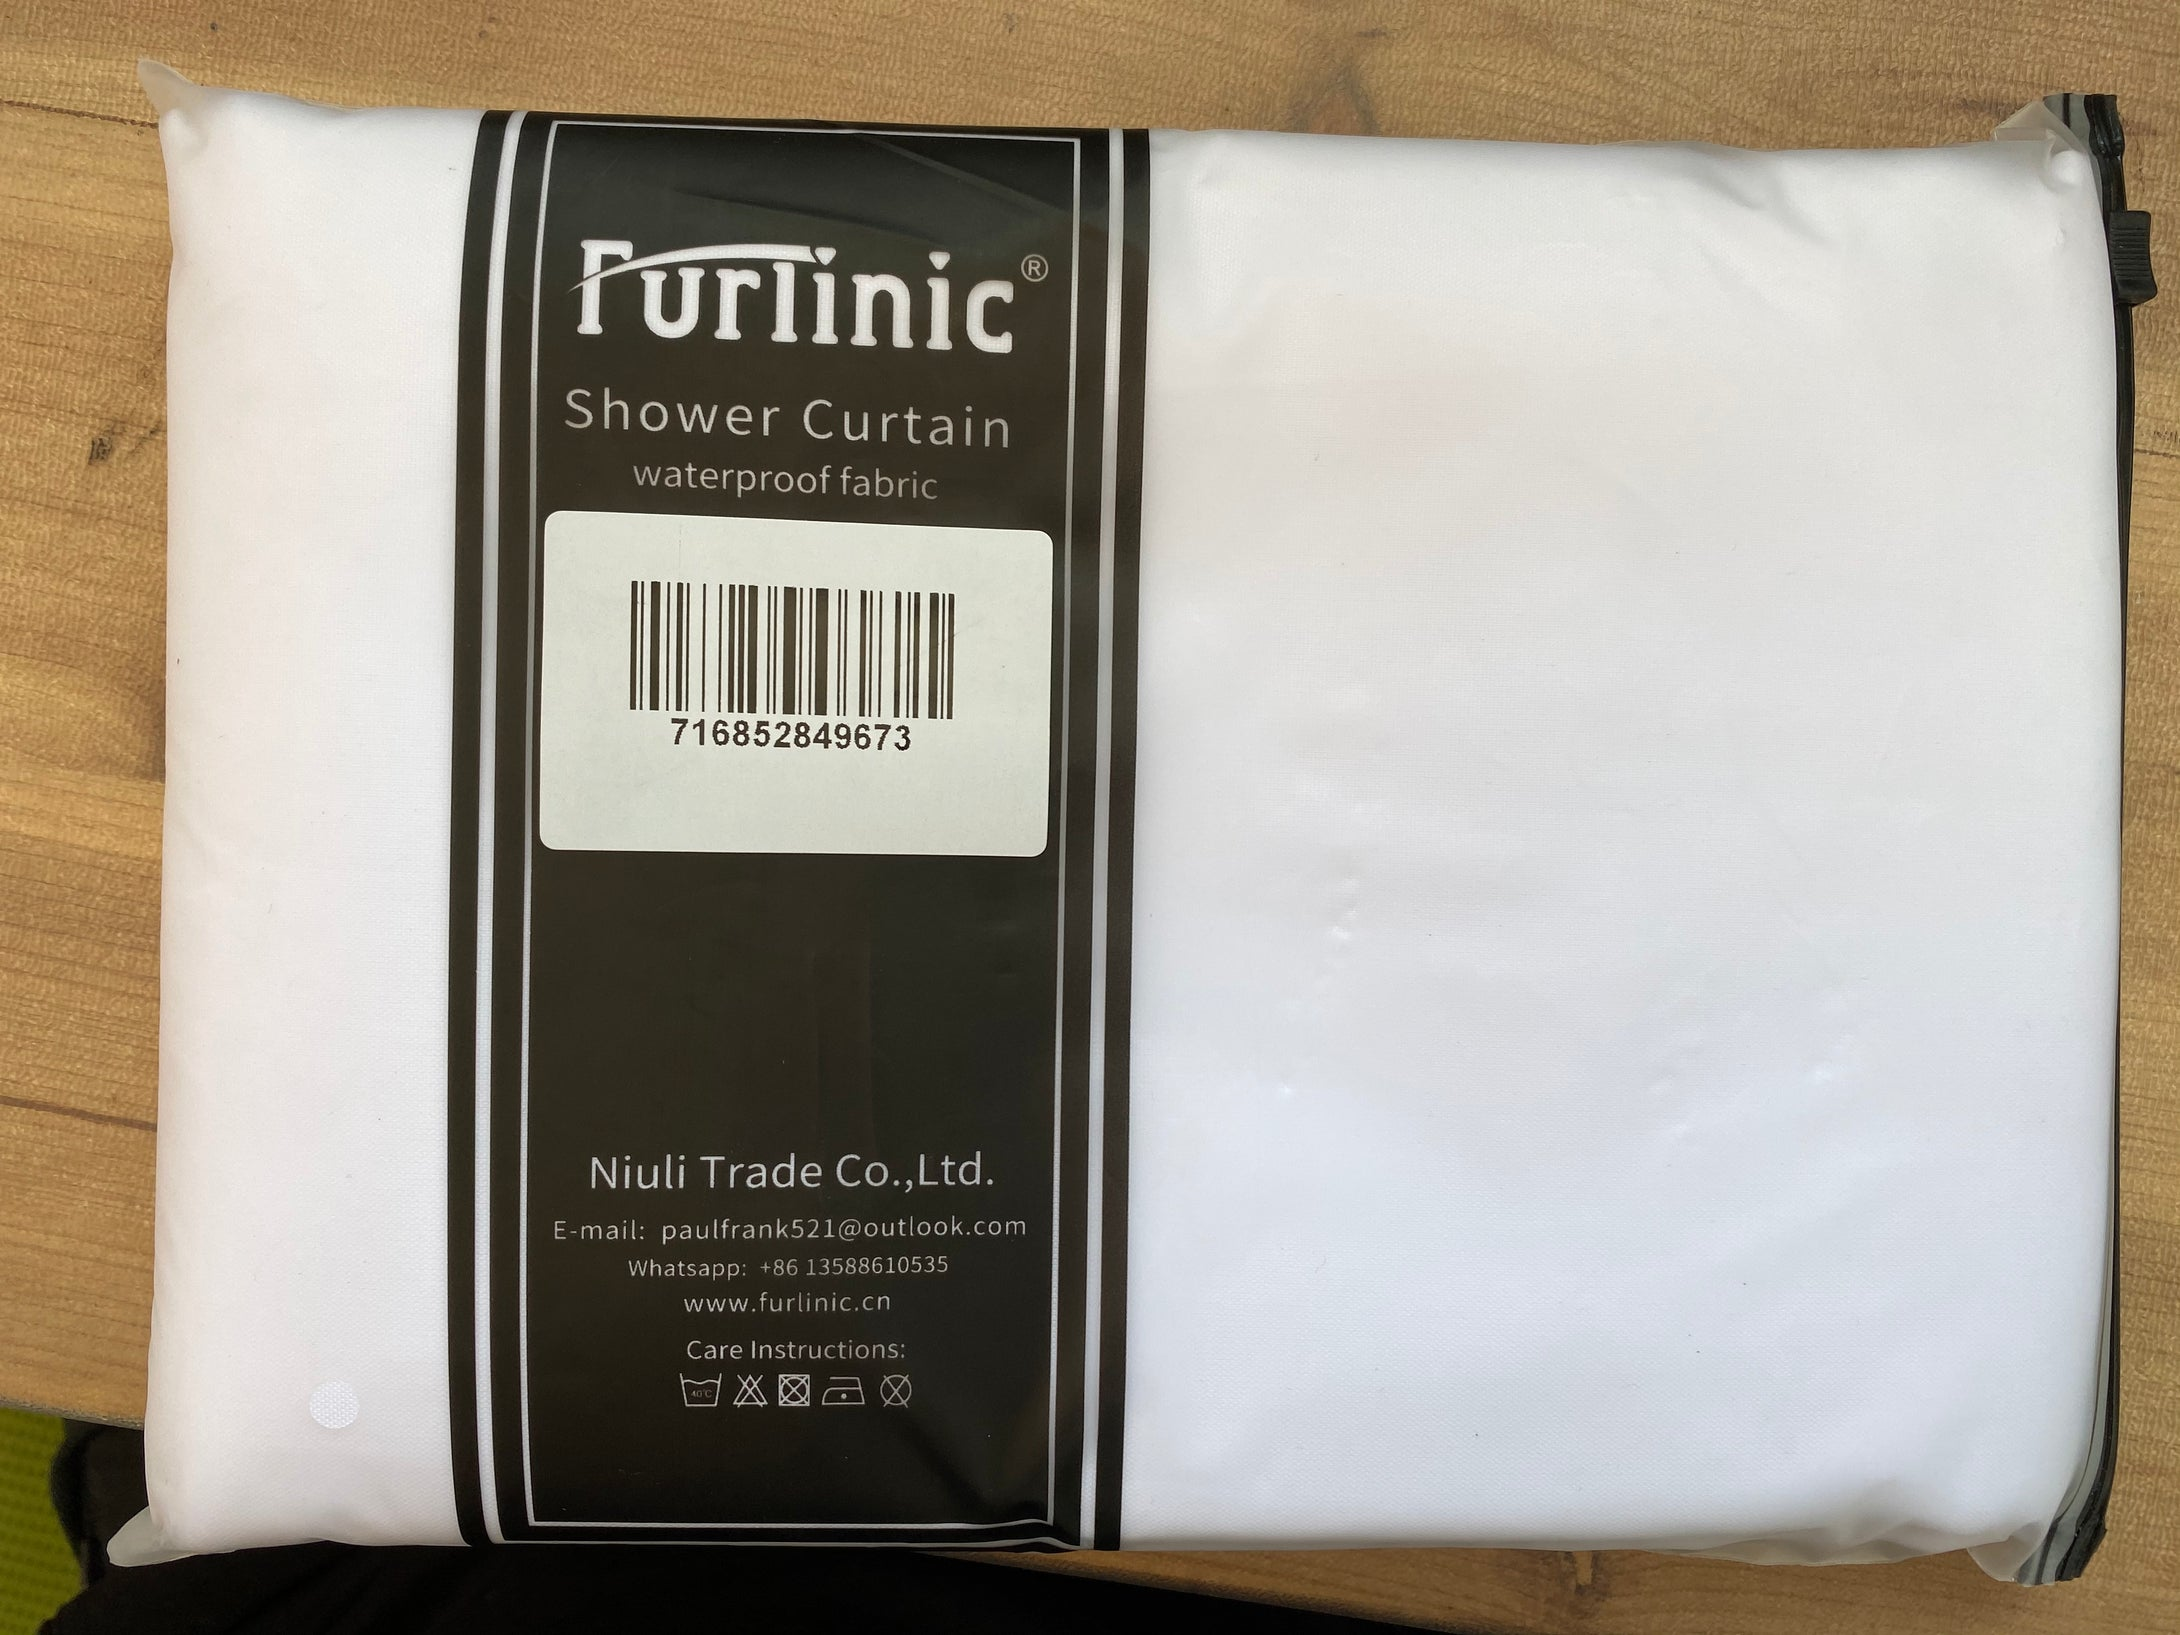 Furlinic Fabric Hookless Shower Curtains, Lurxury White Waterproof and Mould Resistant Curtain Liner for Wet Room or Bath-47x80 Inch.